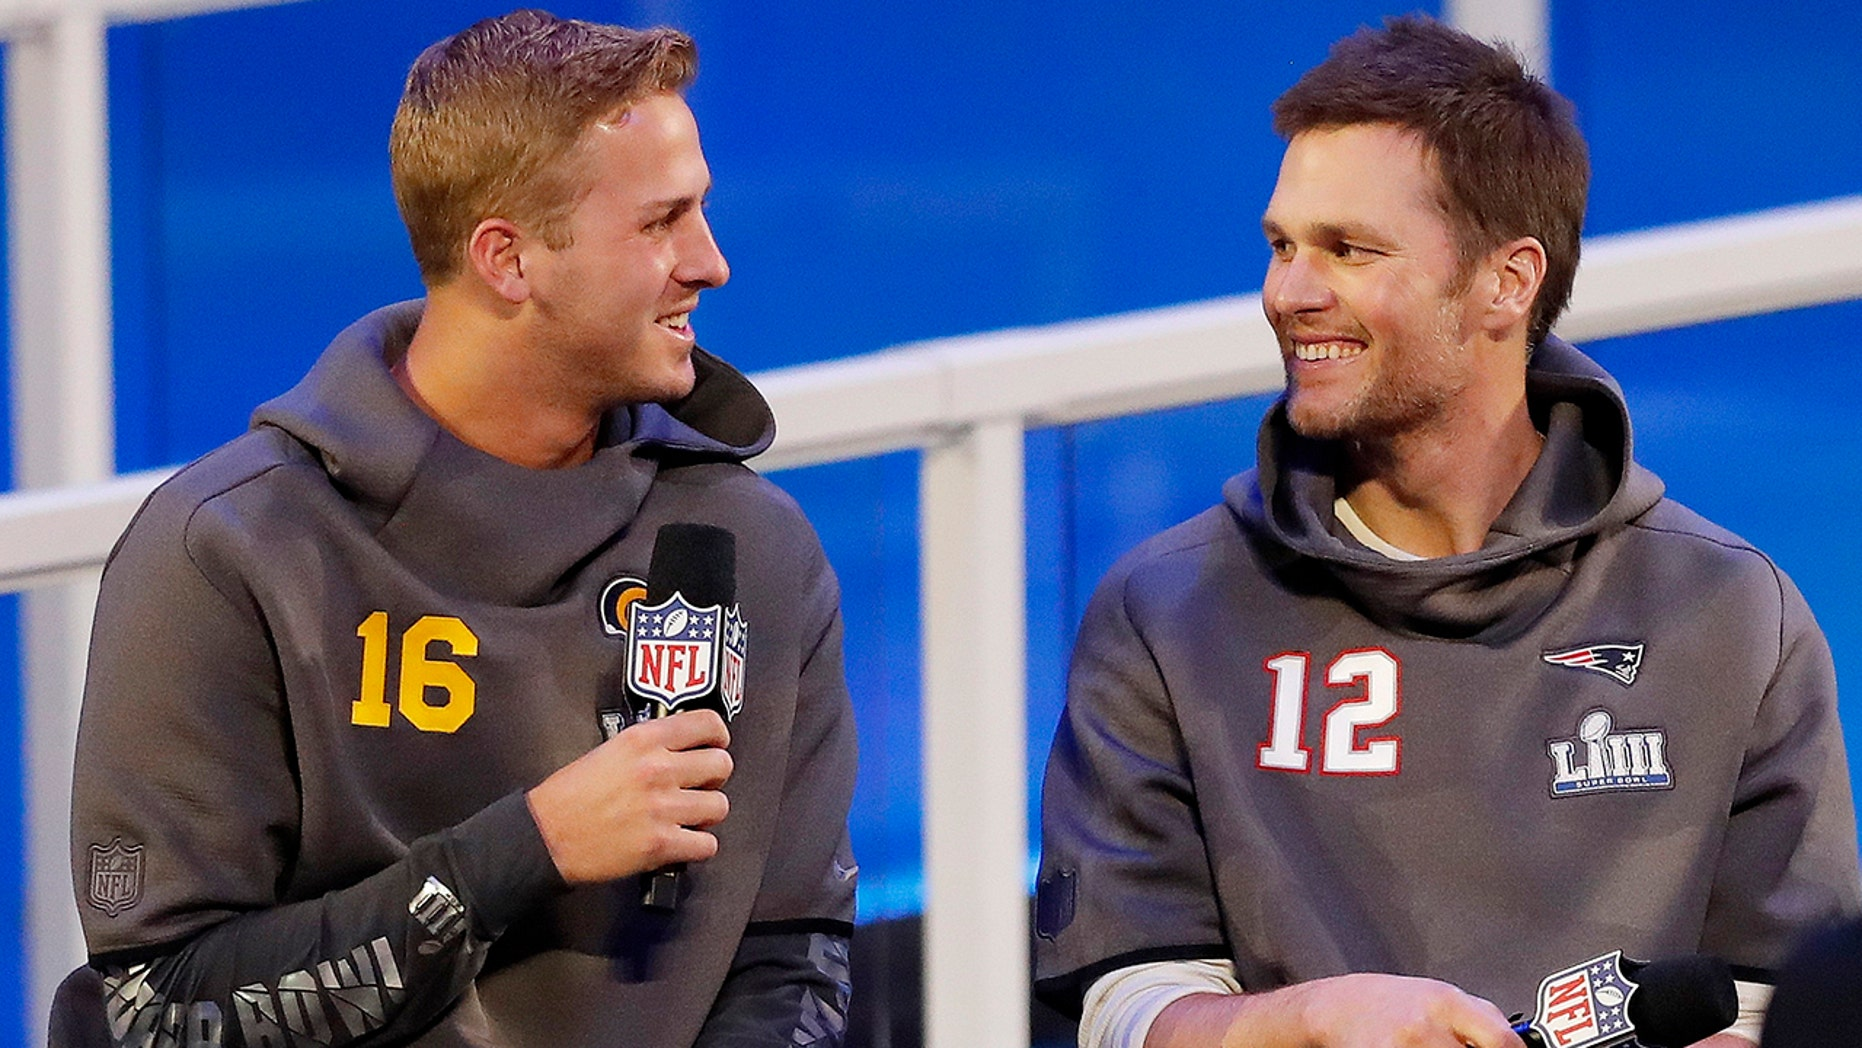 Los Angeles Rams' Jared Goff talks to New England Patriots' Tom Brady during Opening Night for the NFL Super Bowl 53 football game Monday, Jan. 28, 2019, in Atlanta. (AP Photo/John Bazemore)